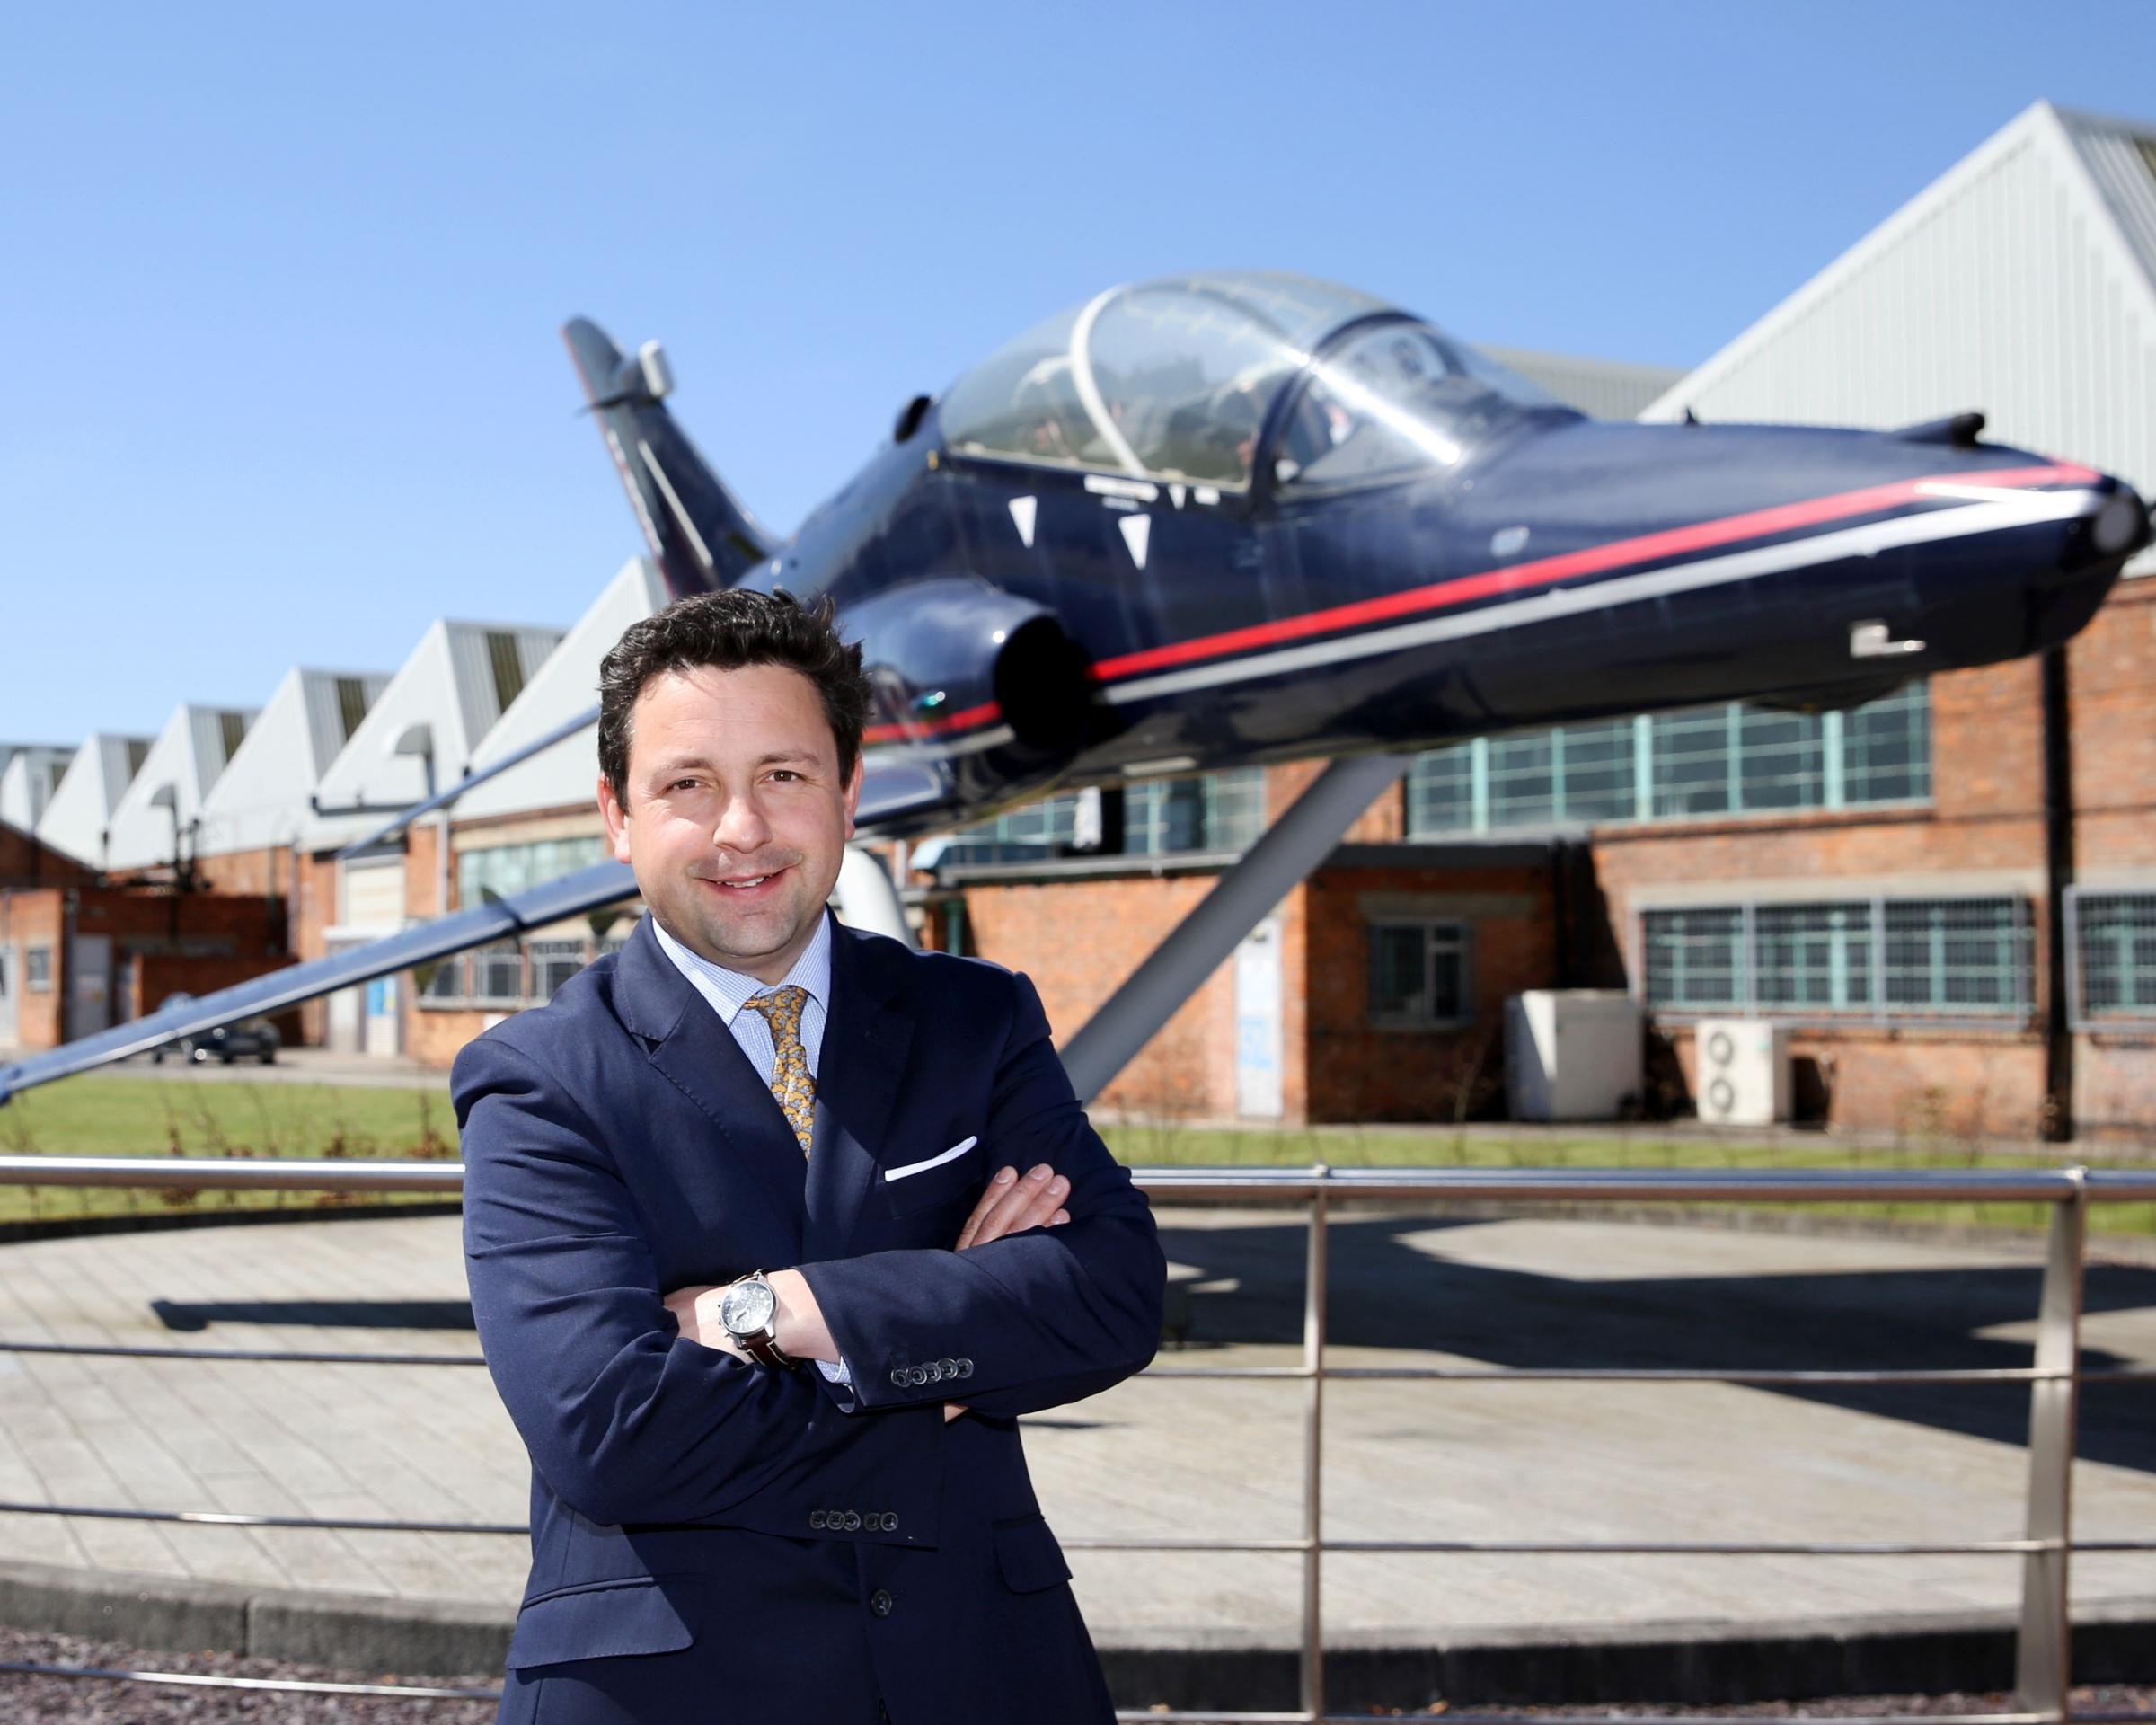 James Appleton-Metcalfe of Citivale at the Humber Enterprise Park